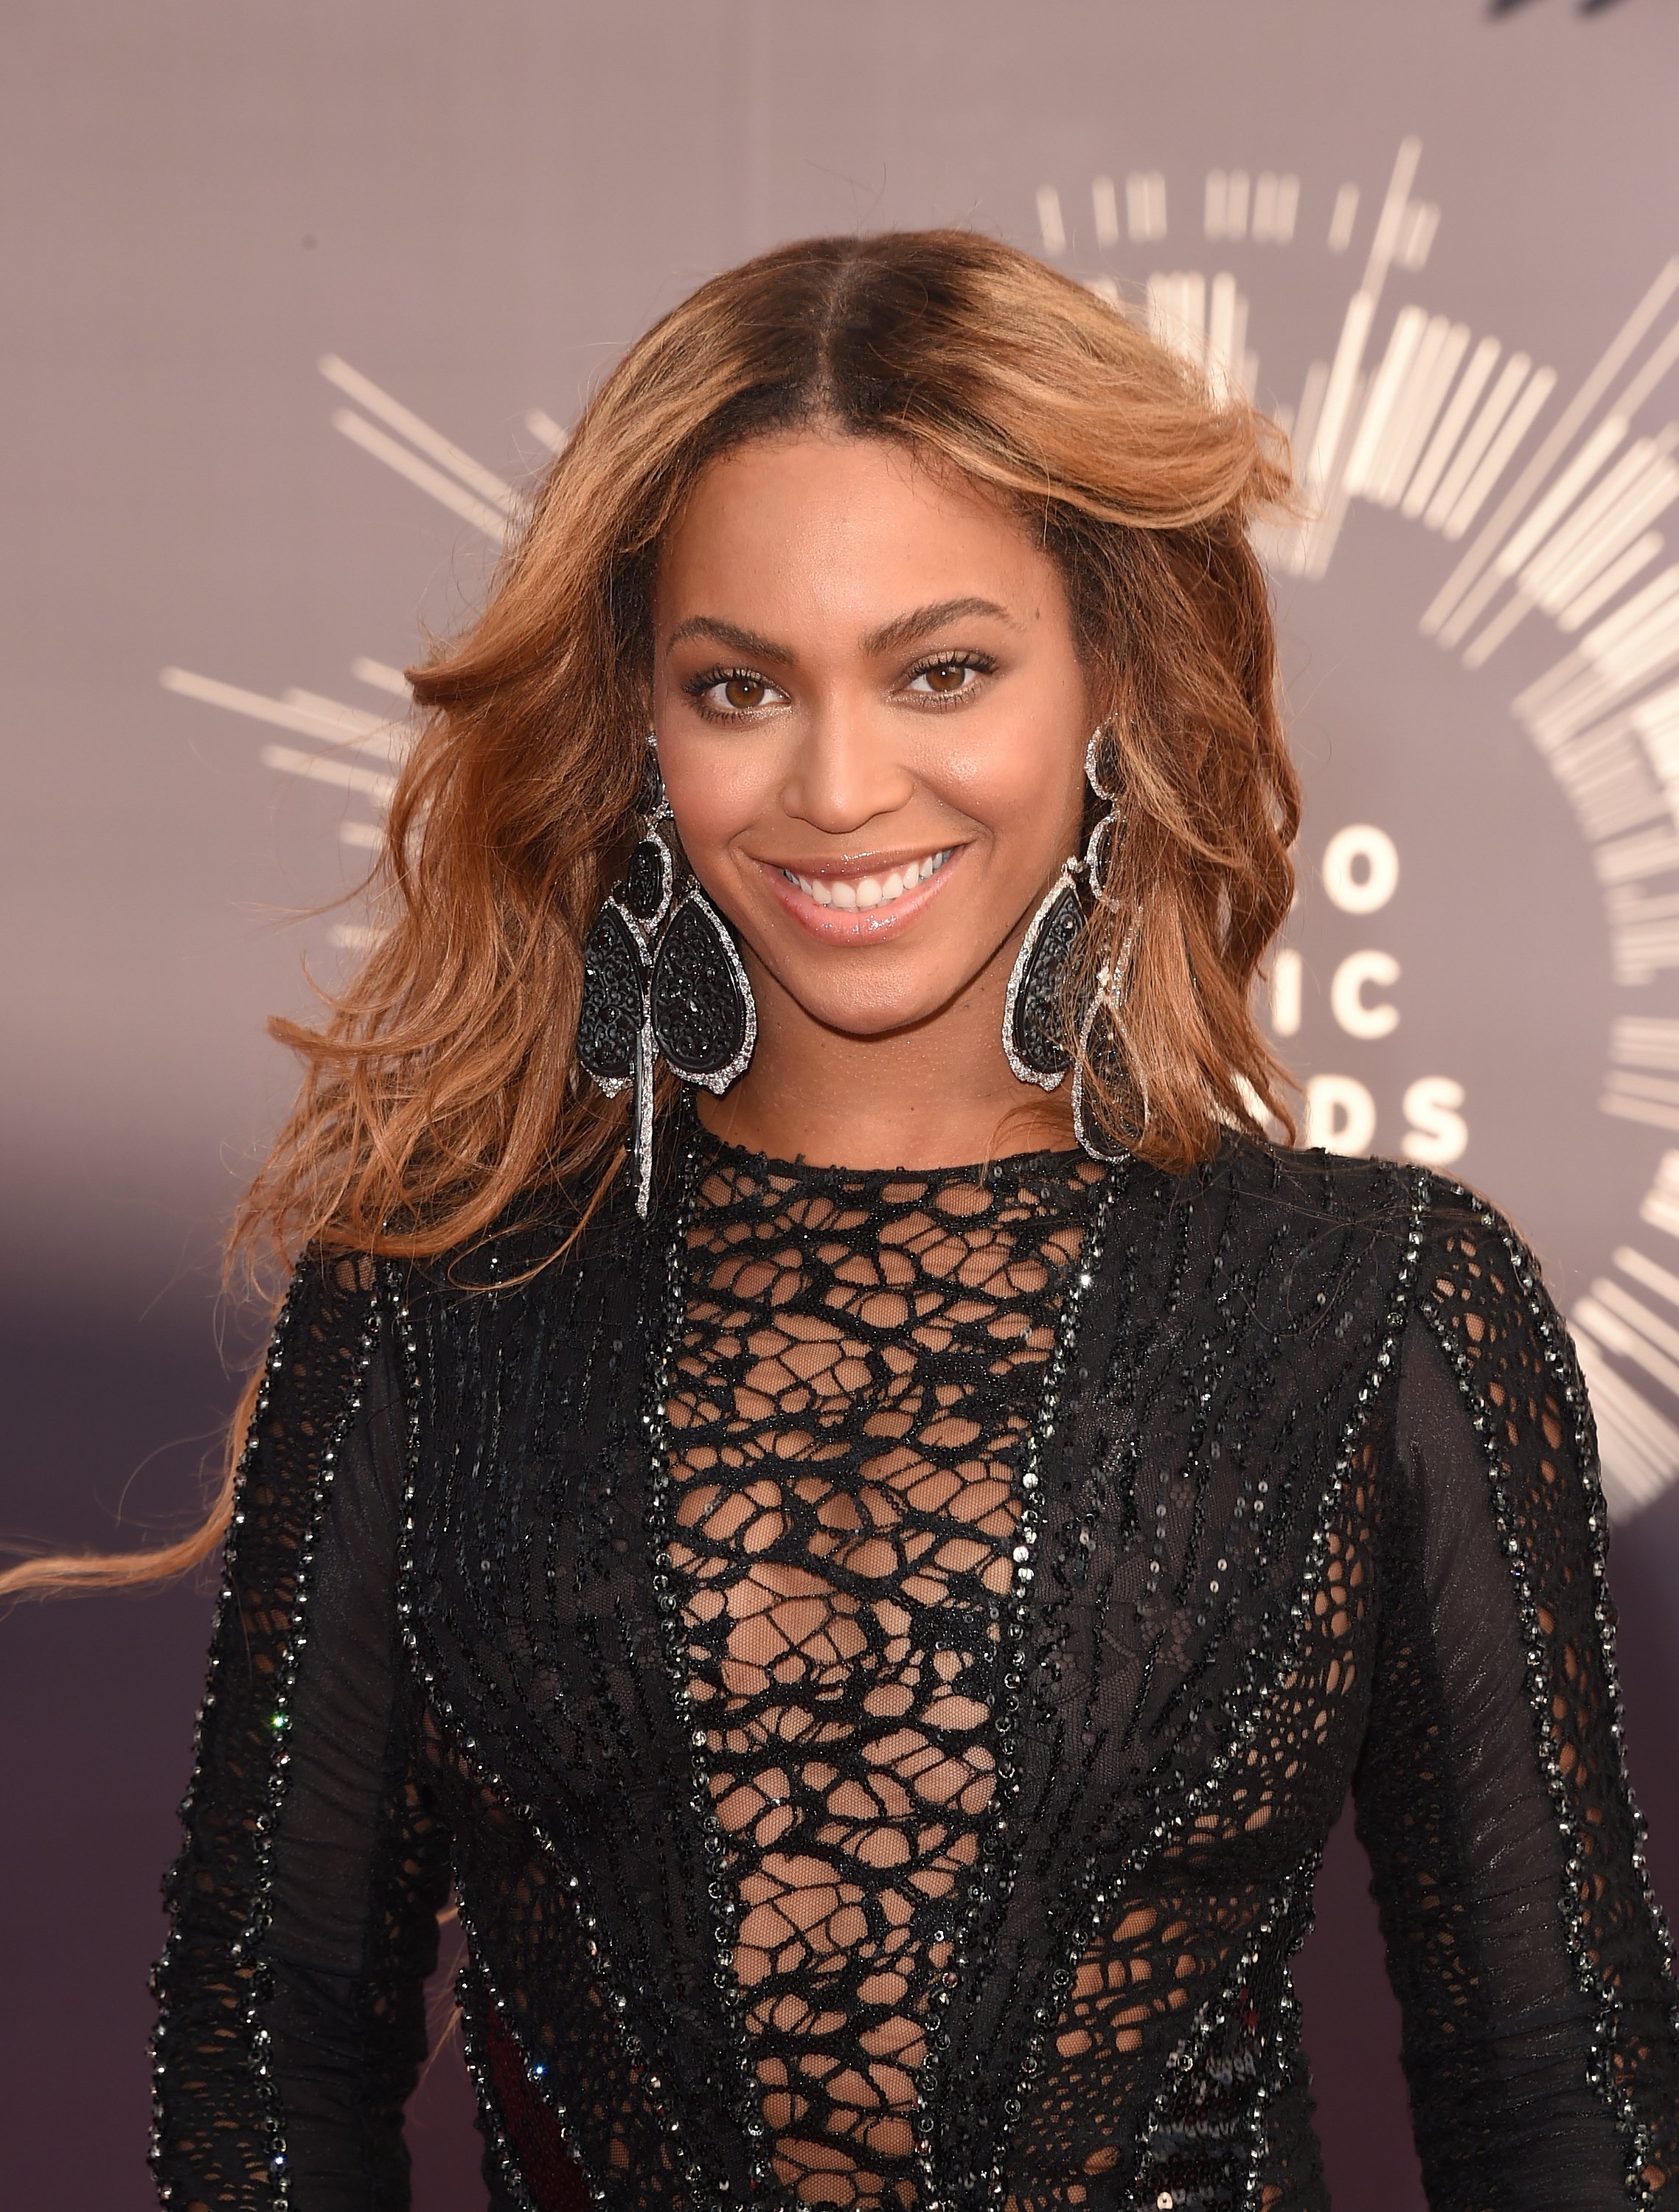 Singer Beyonce Knowles attends the 2014 MTV Video Music Awards at The Forum on Aug. 24, 2014 in Inglewood, Calif.